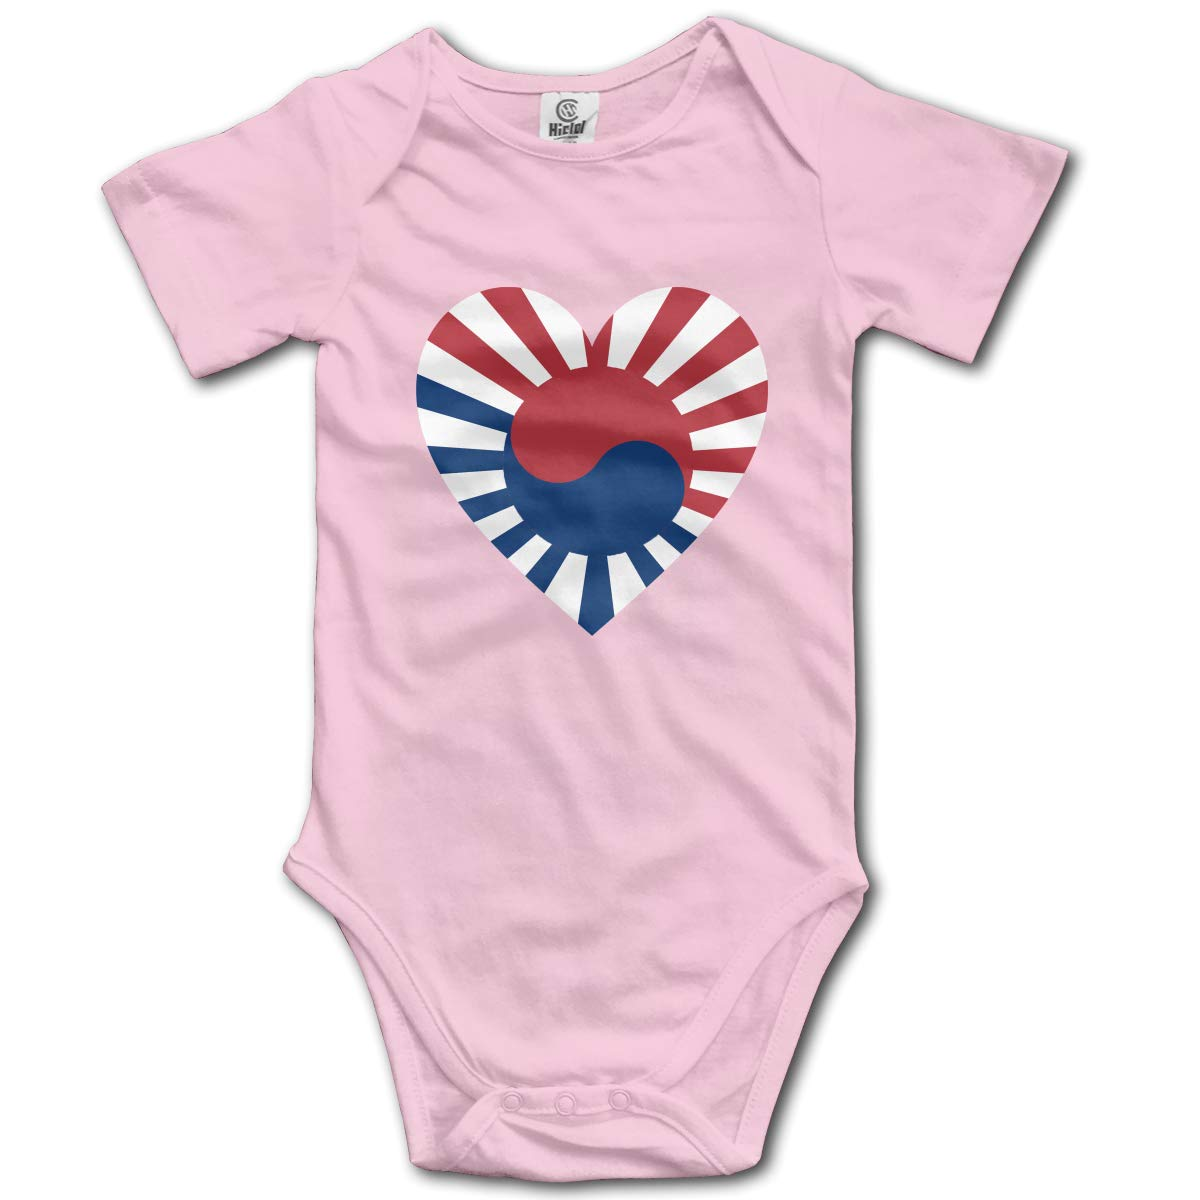 Baby Short-Sleeve Onesies Love Ying Yang Flag Bodysuit Baby Outfits